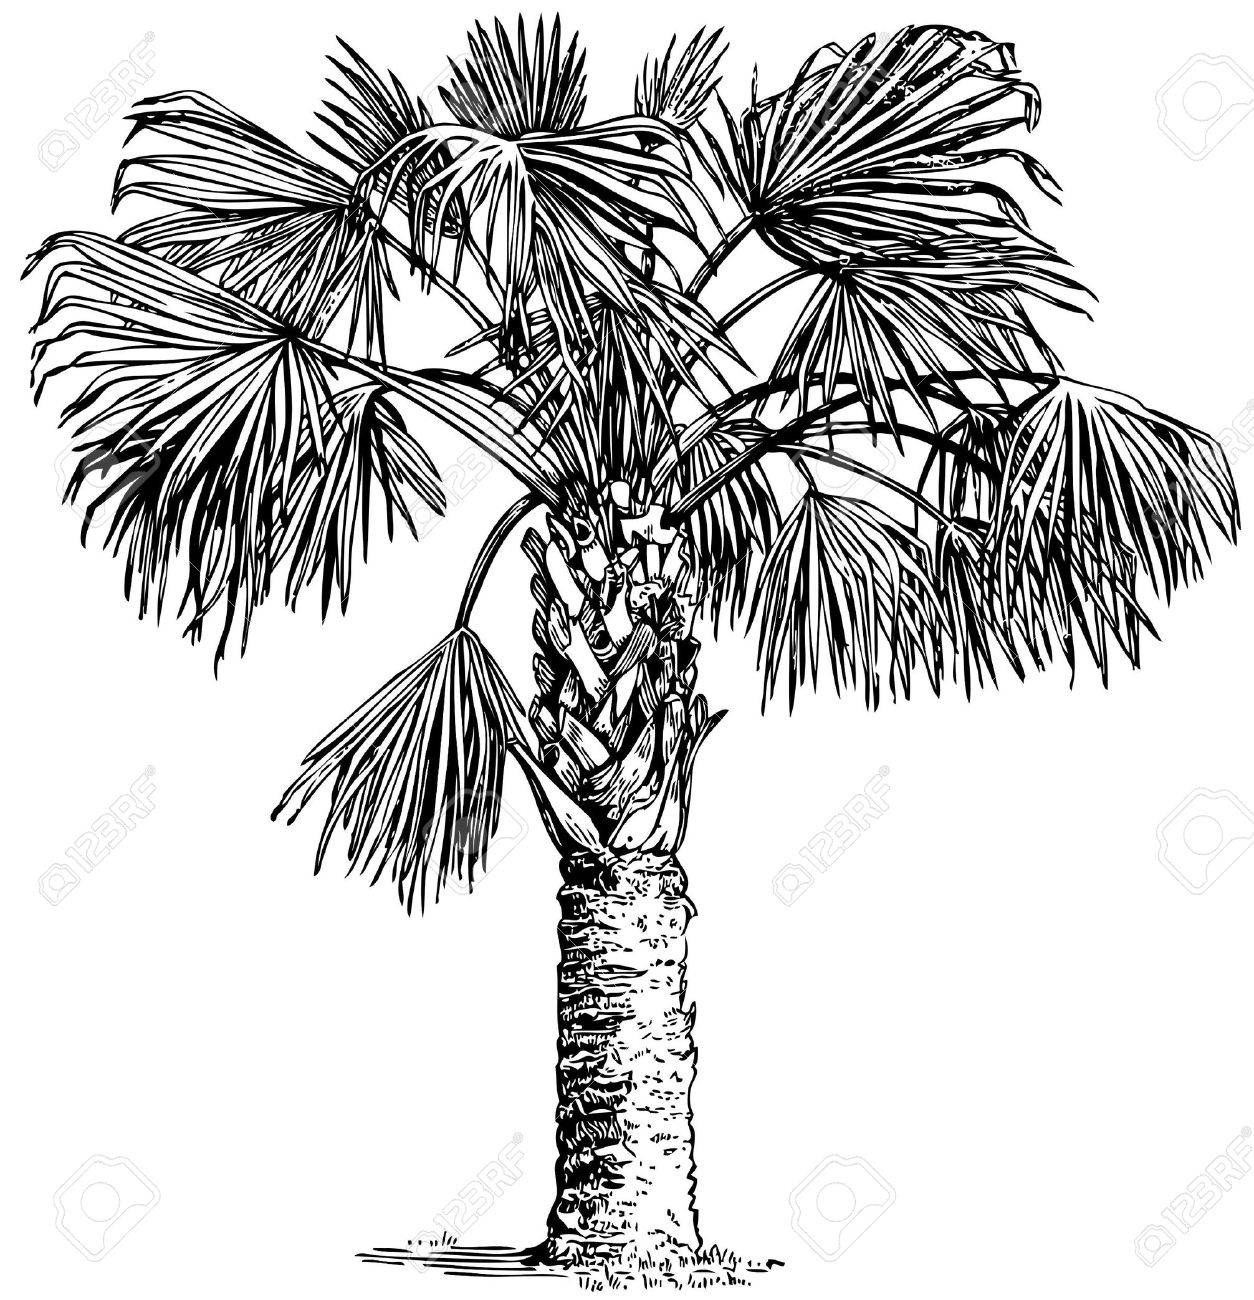 1254x1300 Plant Sabal Palmetto (Cabbage Palm) Isolated On White Background